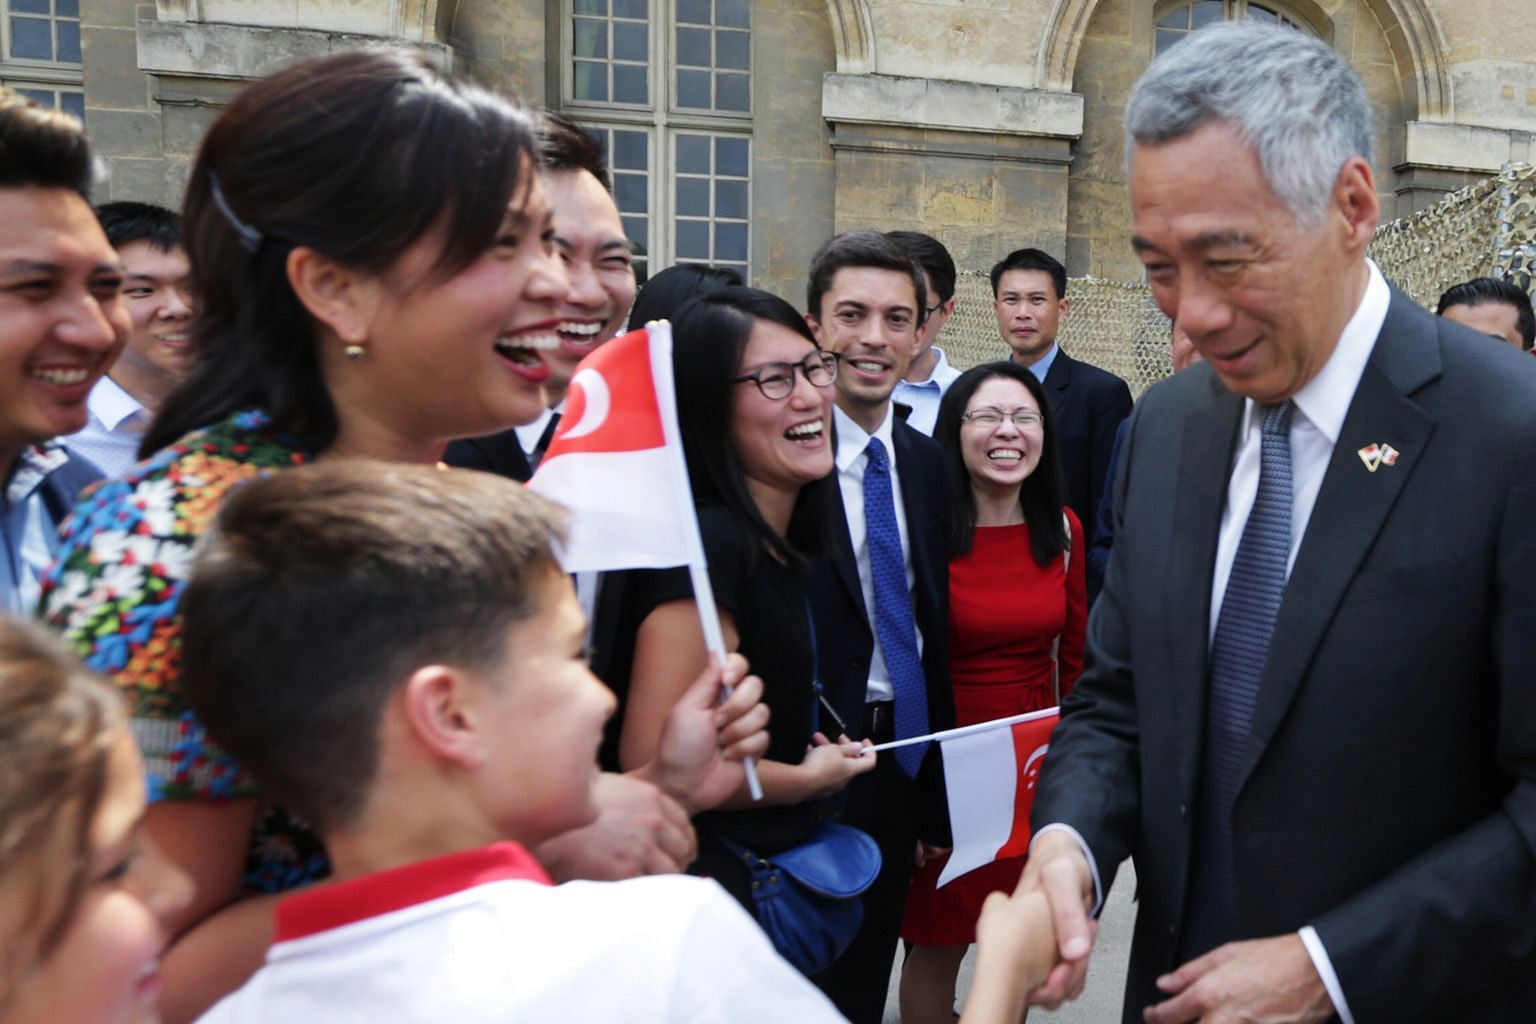 Singaporeans in Paris met Prime Minister Lee Hsien Loong at the Hotel national des Invalides yesterday. PM Lee is on a three-day official visit to France, and will attend the Bastille Day parade today as a guest-of-honour at the invitation of French